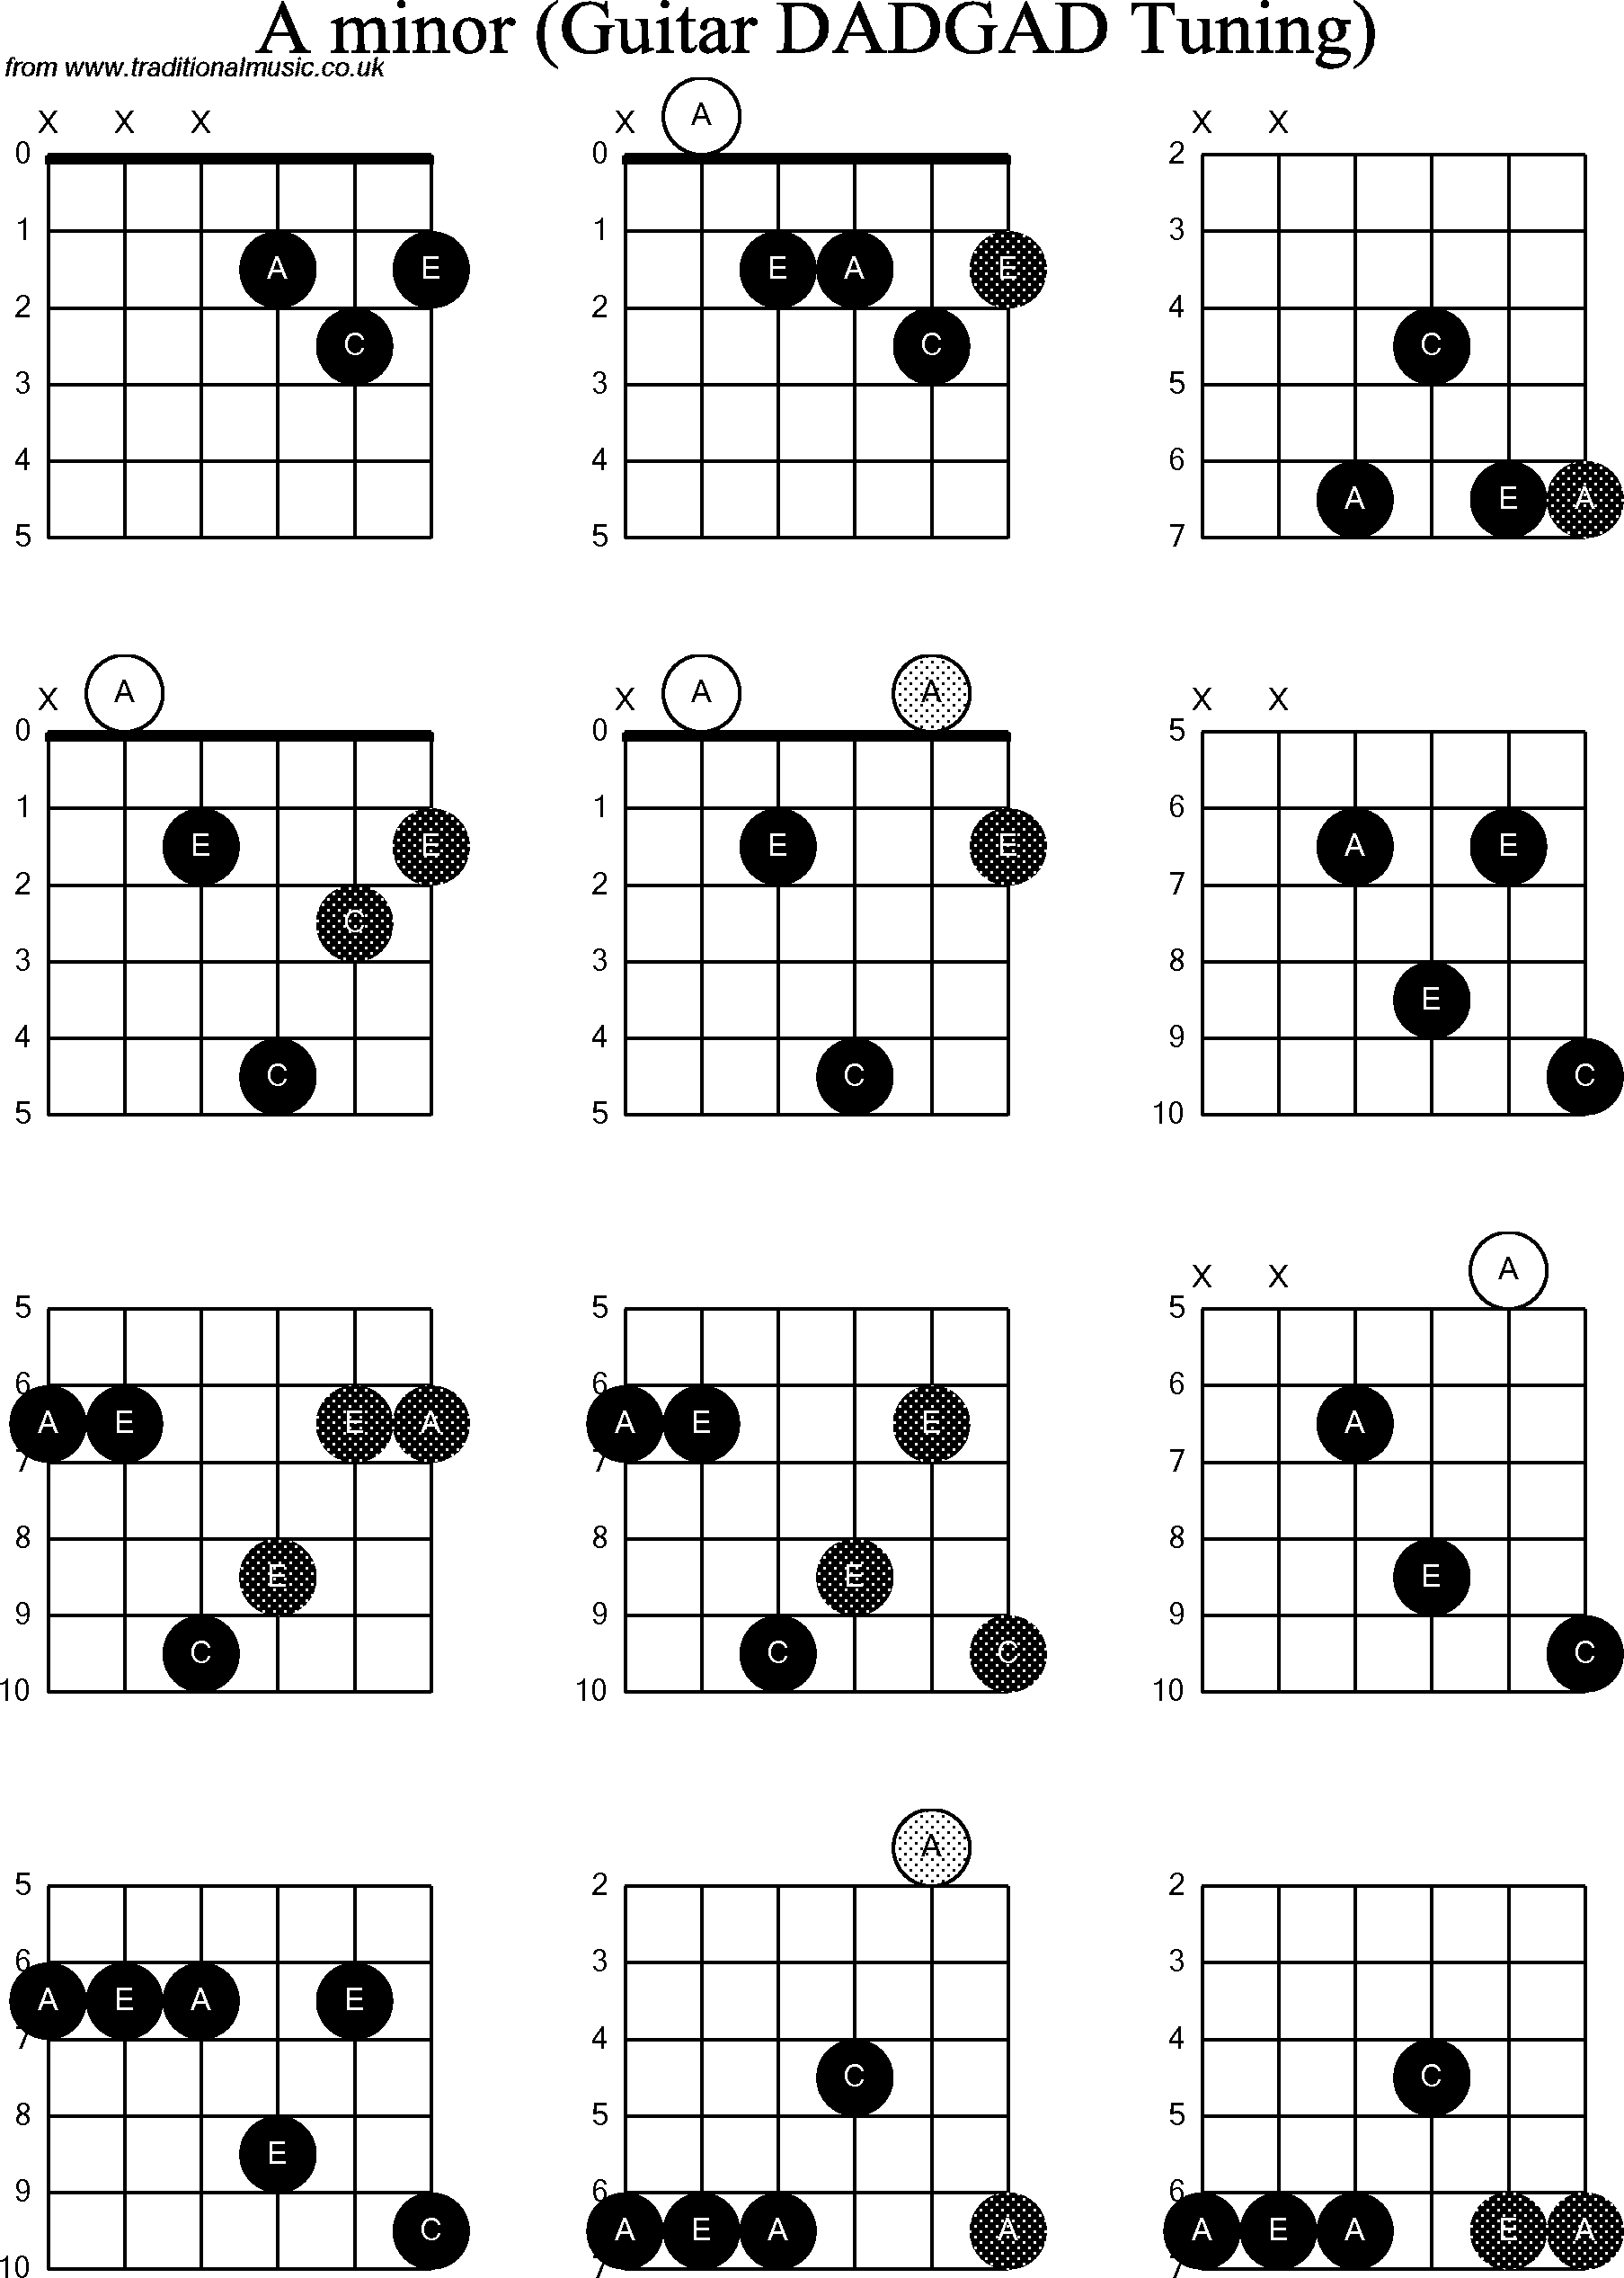 Chord Diagrams D Modal Guitar Dadgad A Minor